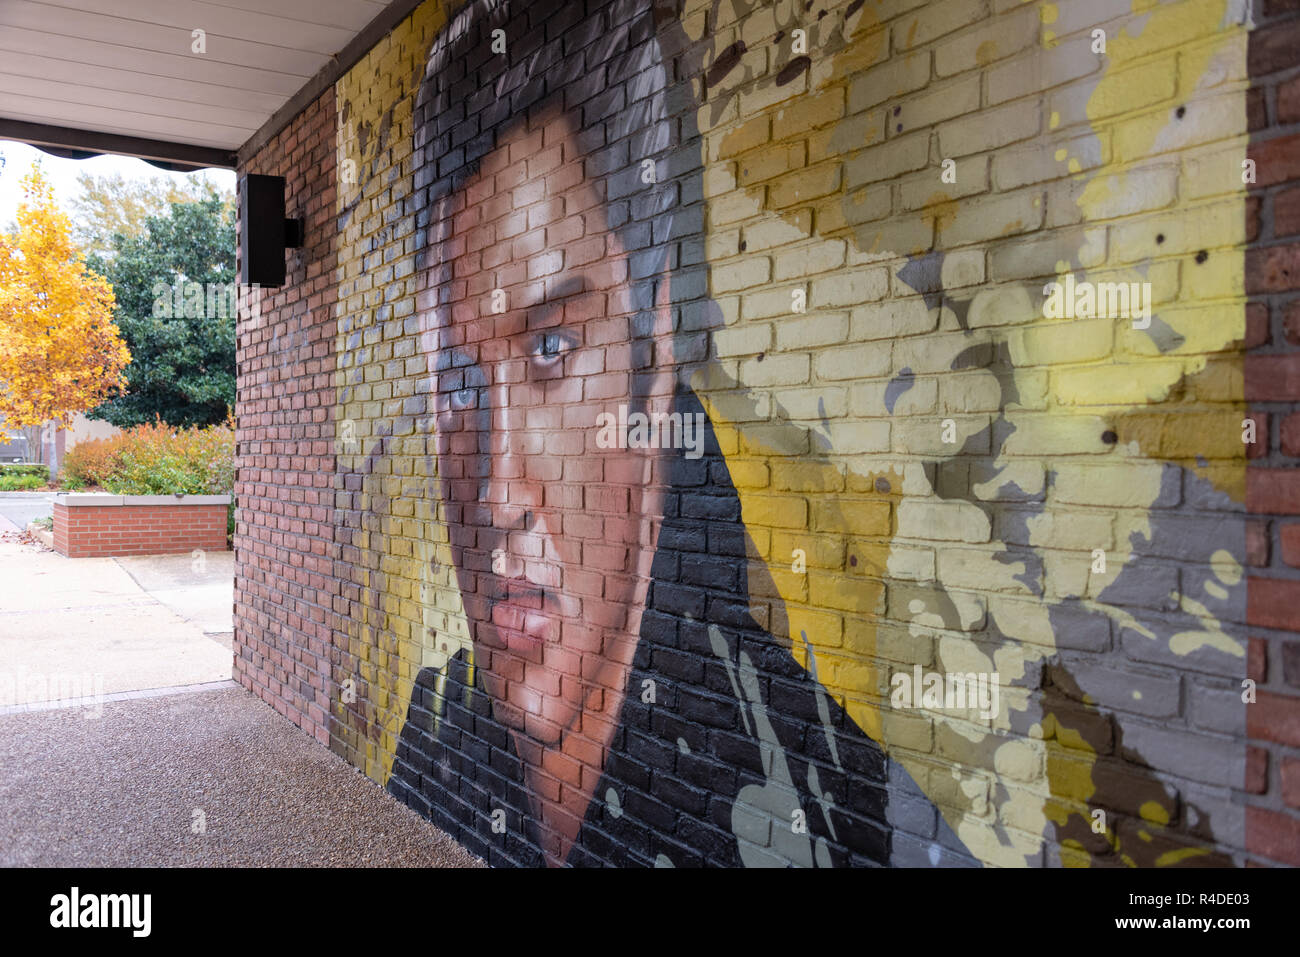 Elvis Presley wall mural on Main Street in downtown Tupelo, Mississippi. Elvis was was born in Tupelo on January 8, 1935. - Stock Image